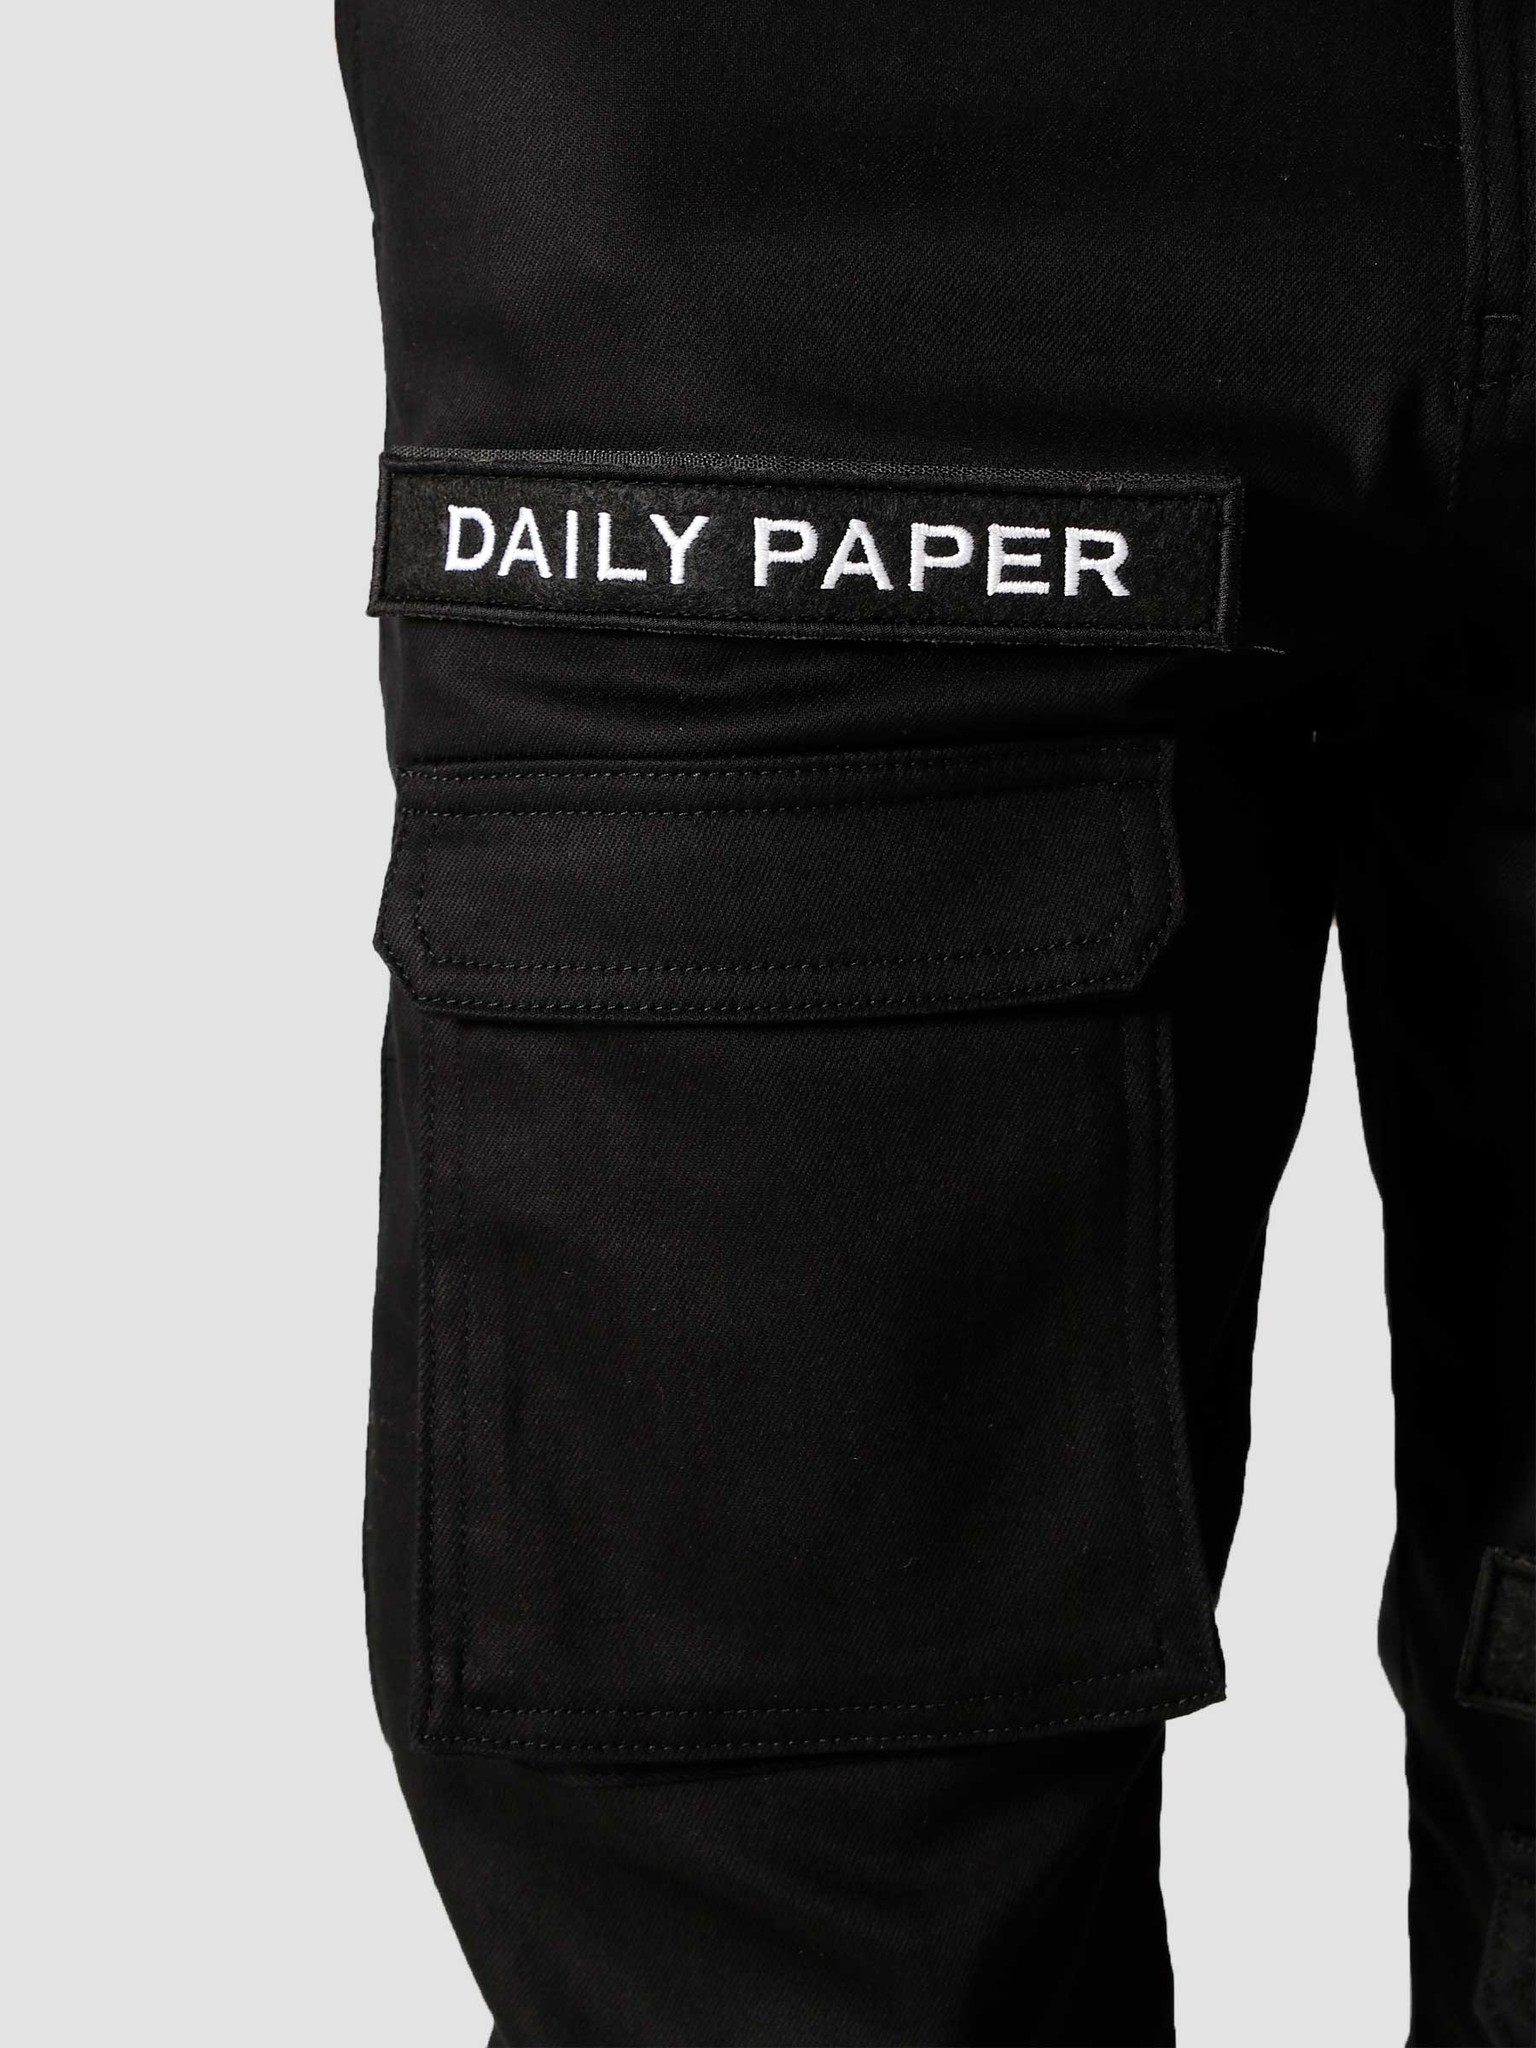 Daily Paper Daily Paper Cargo Pants Black NOSB01